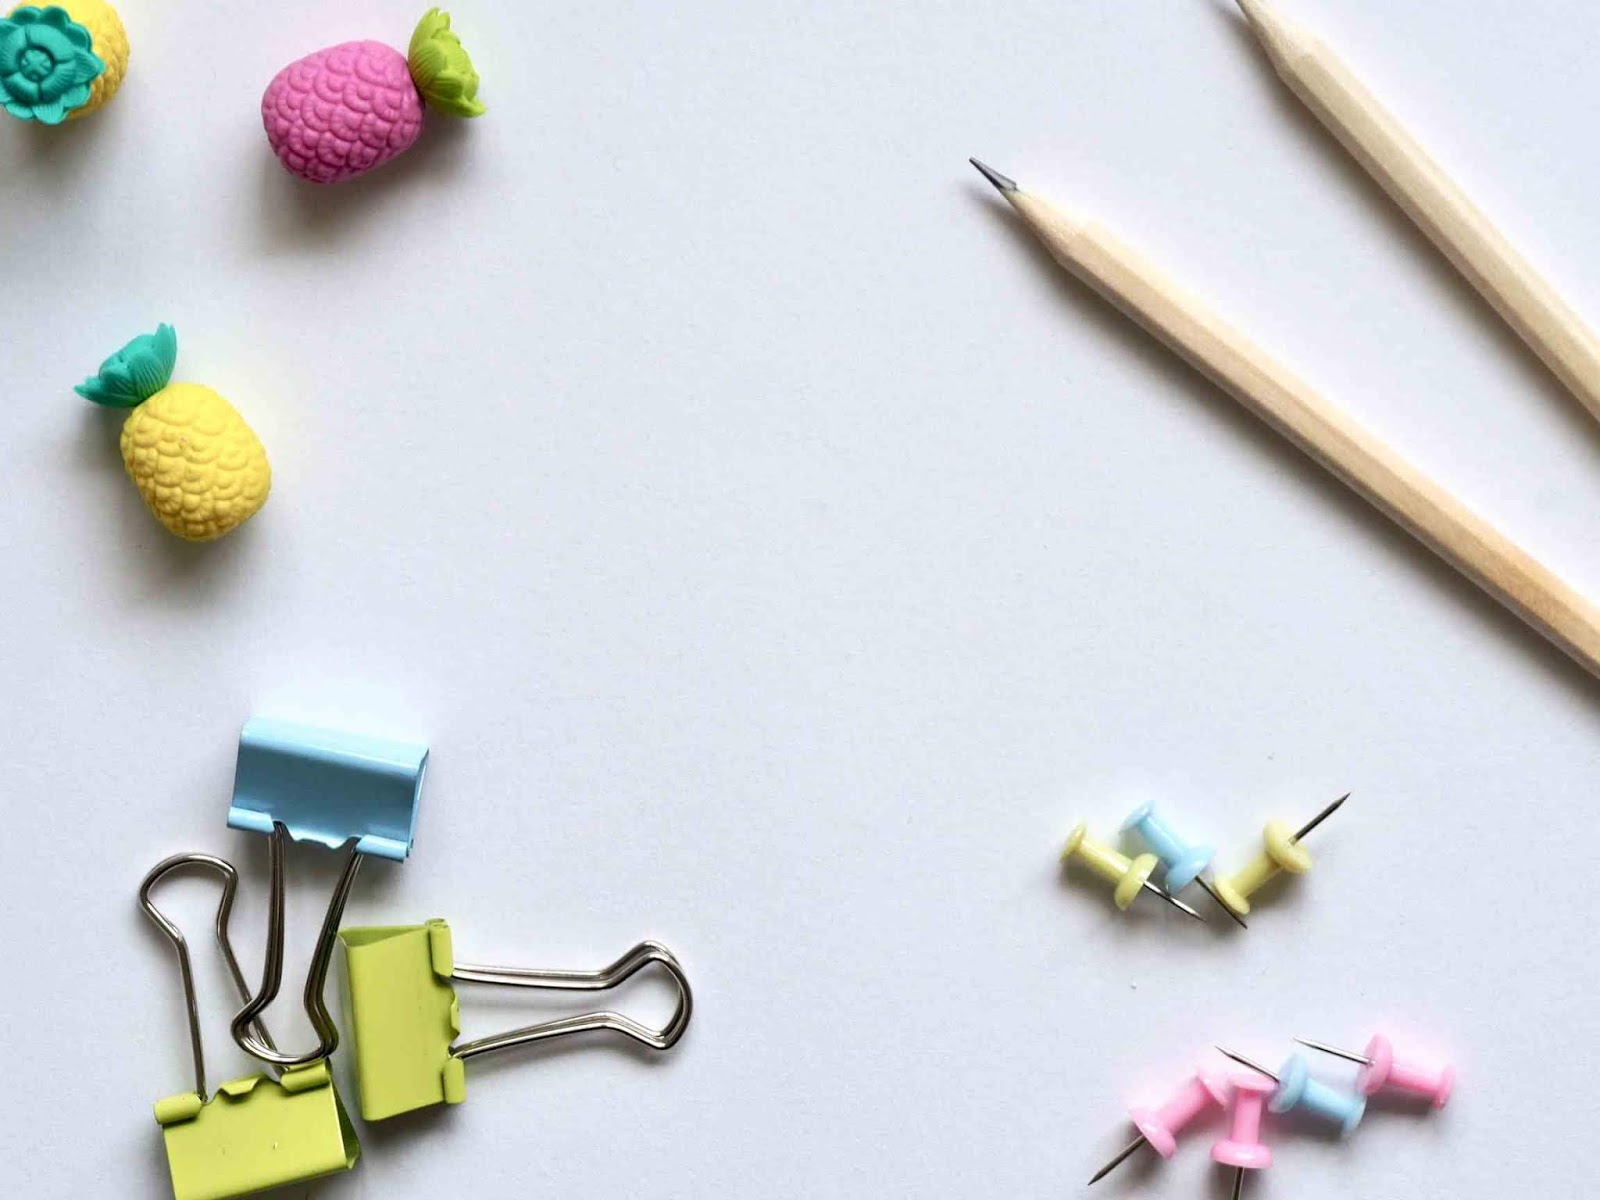 A photo of two pencils, pins, three paper clips, and magnets in bright colors